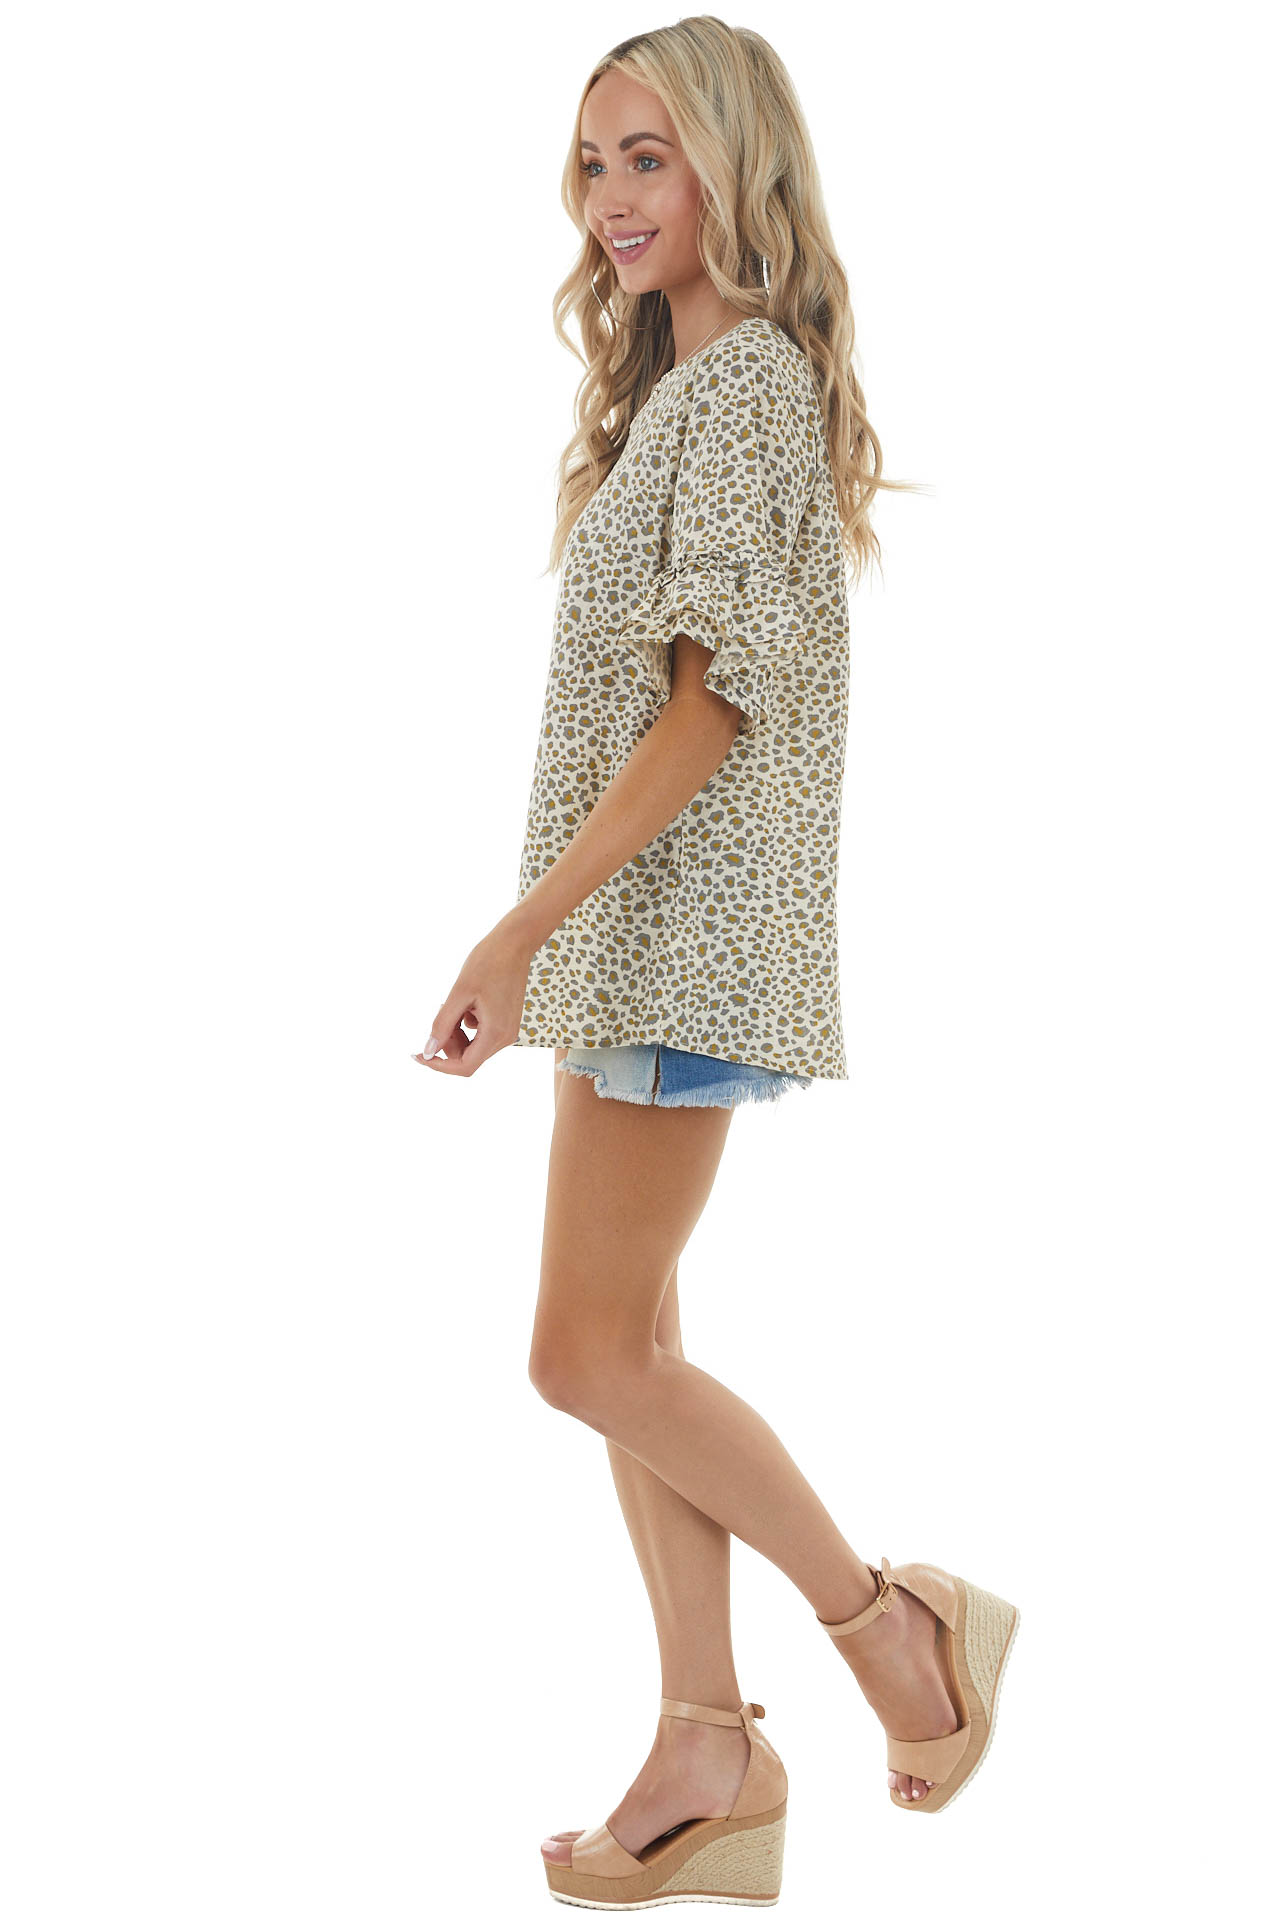 Sand Leopard Print Top with Short Flare Sleeves